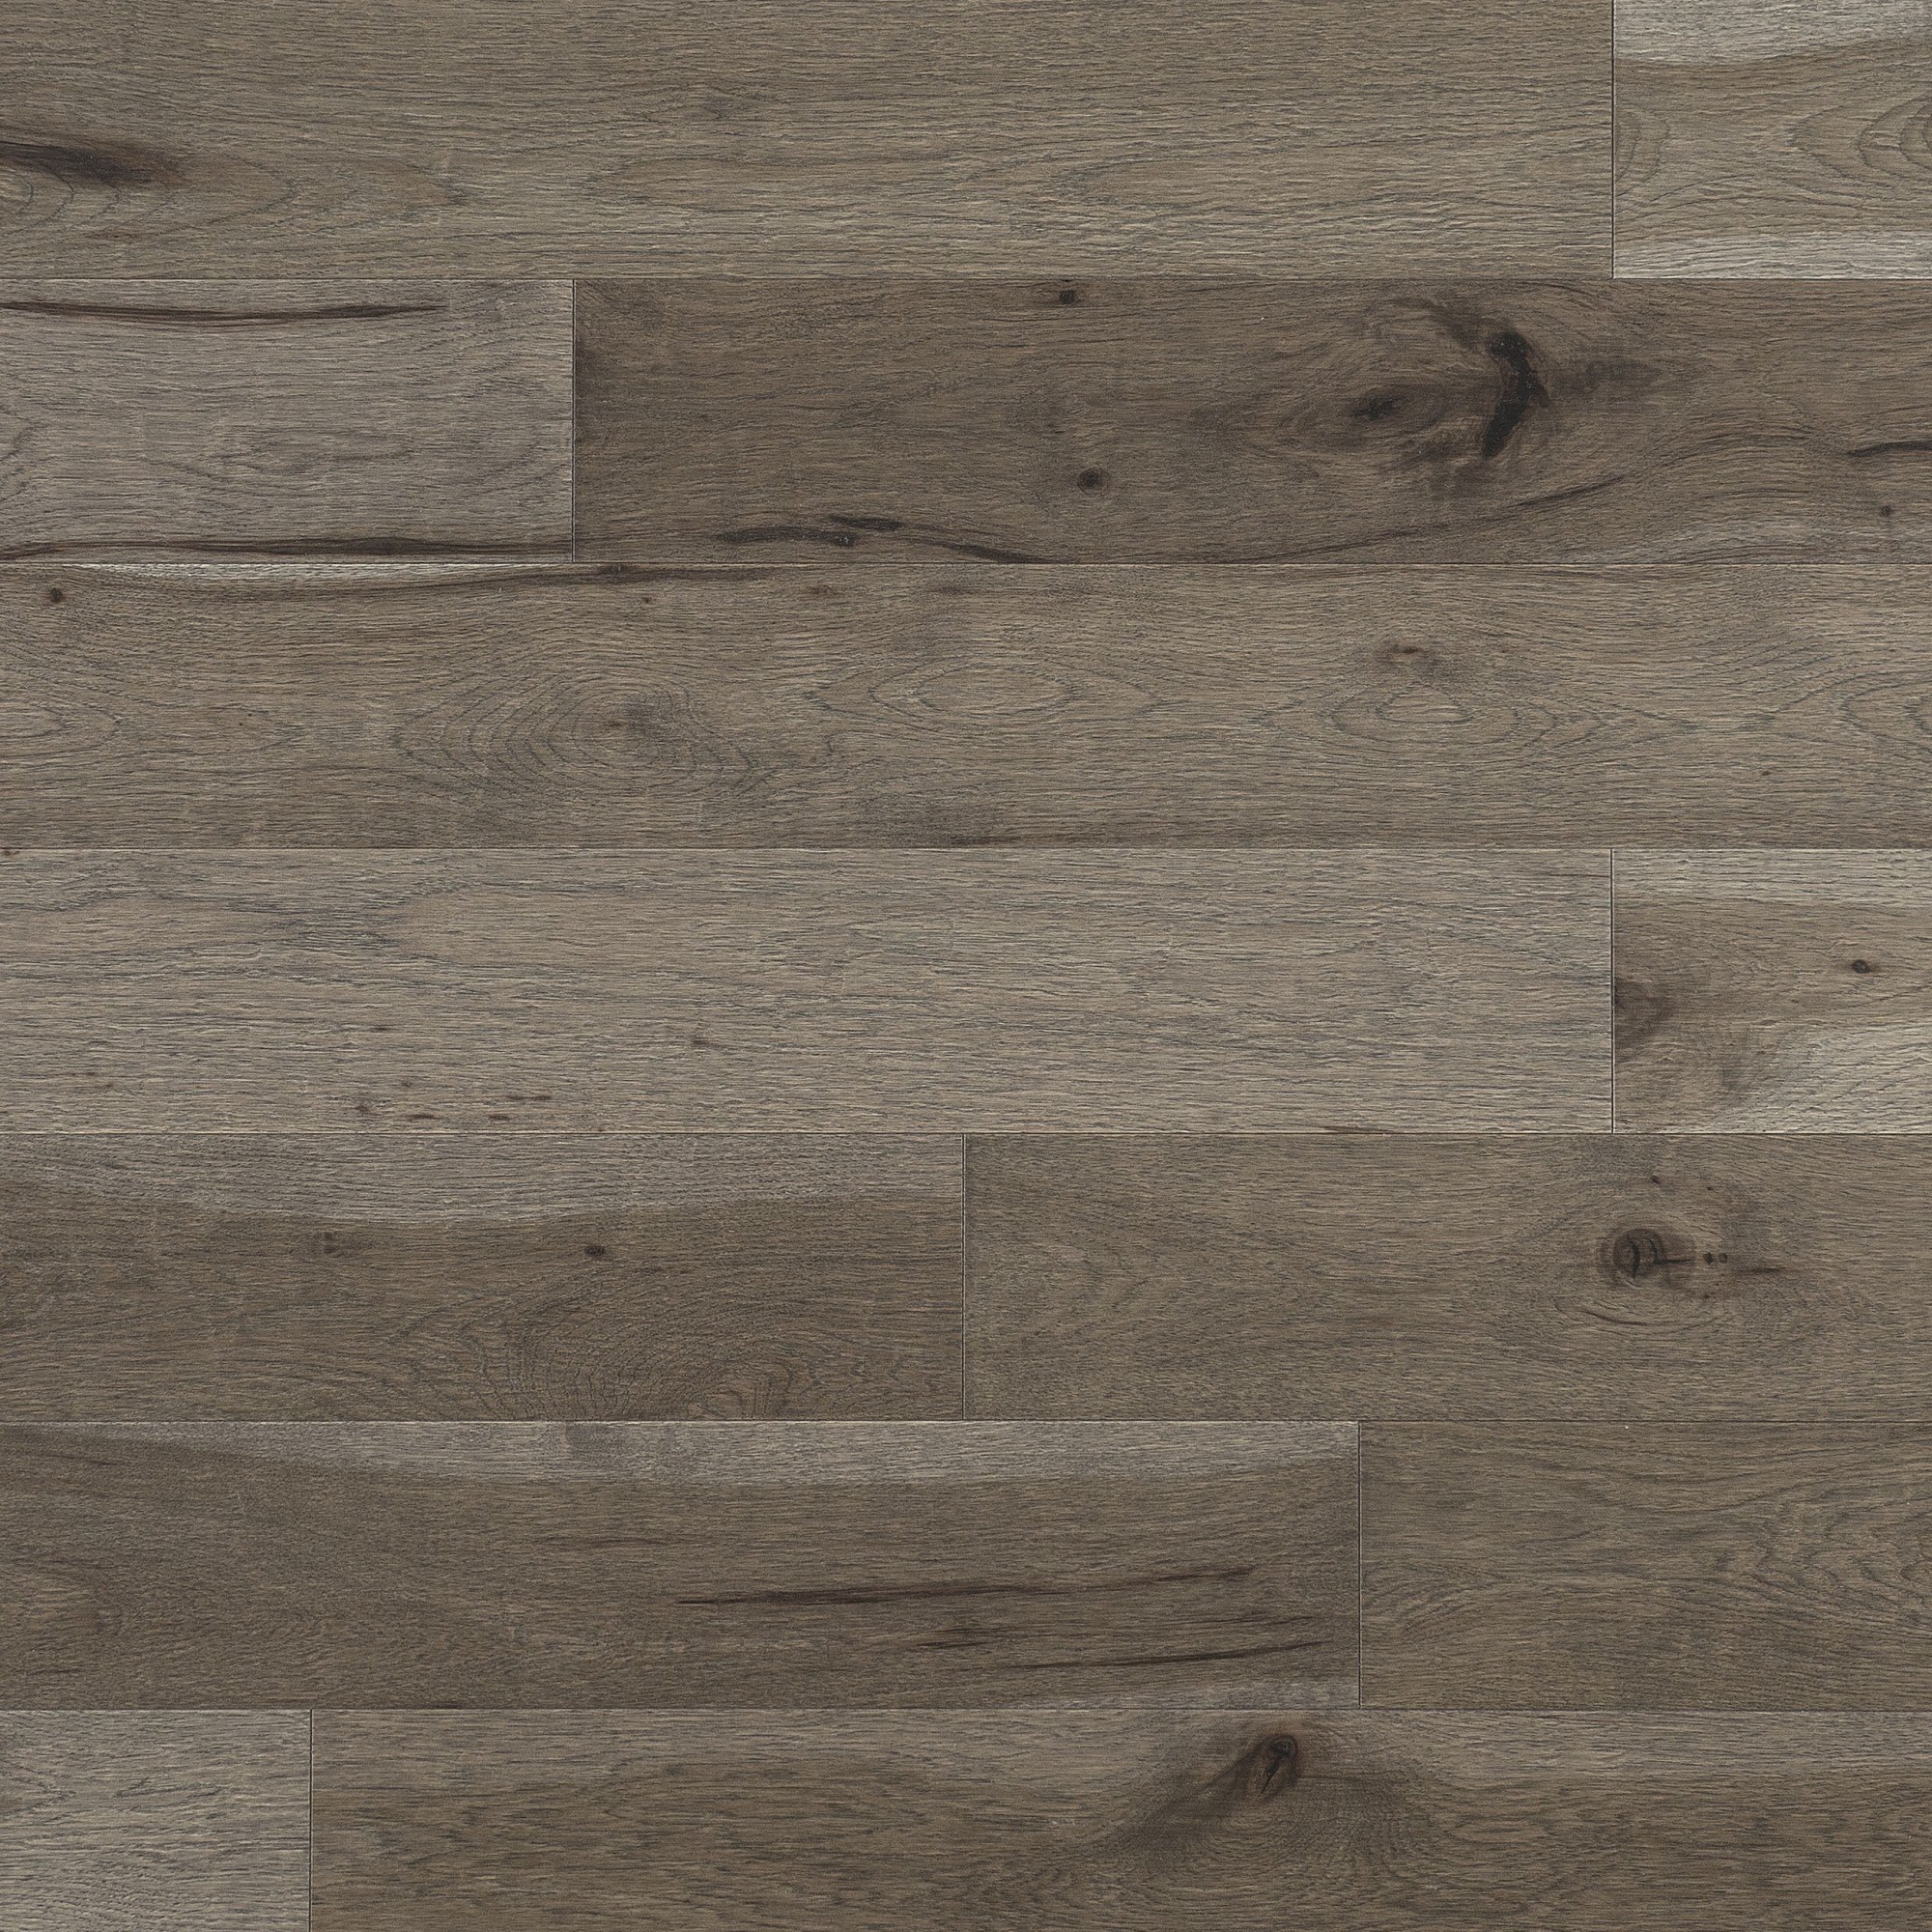 Imagine hickory barn wood character mirage hardwood floors for Mirage wood floors